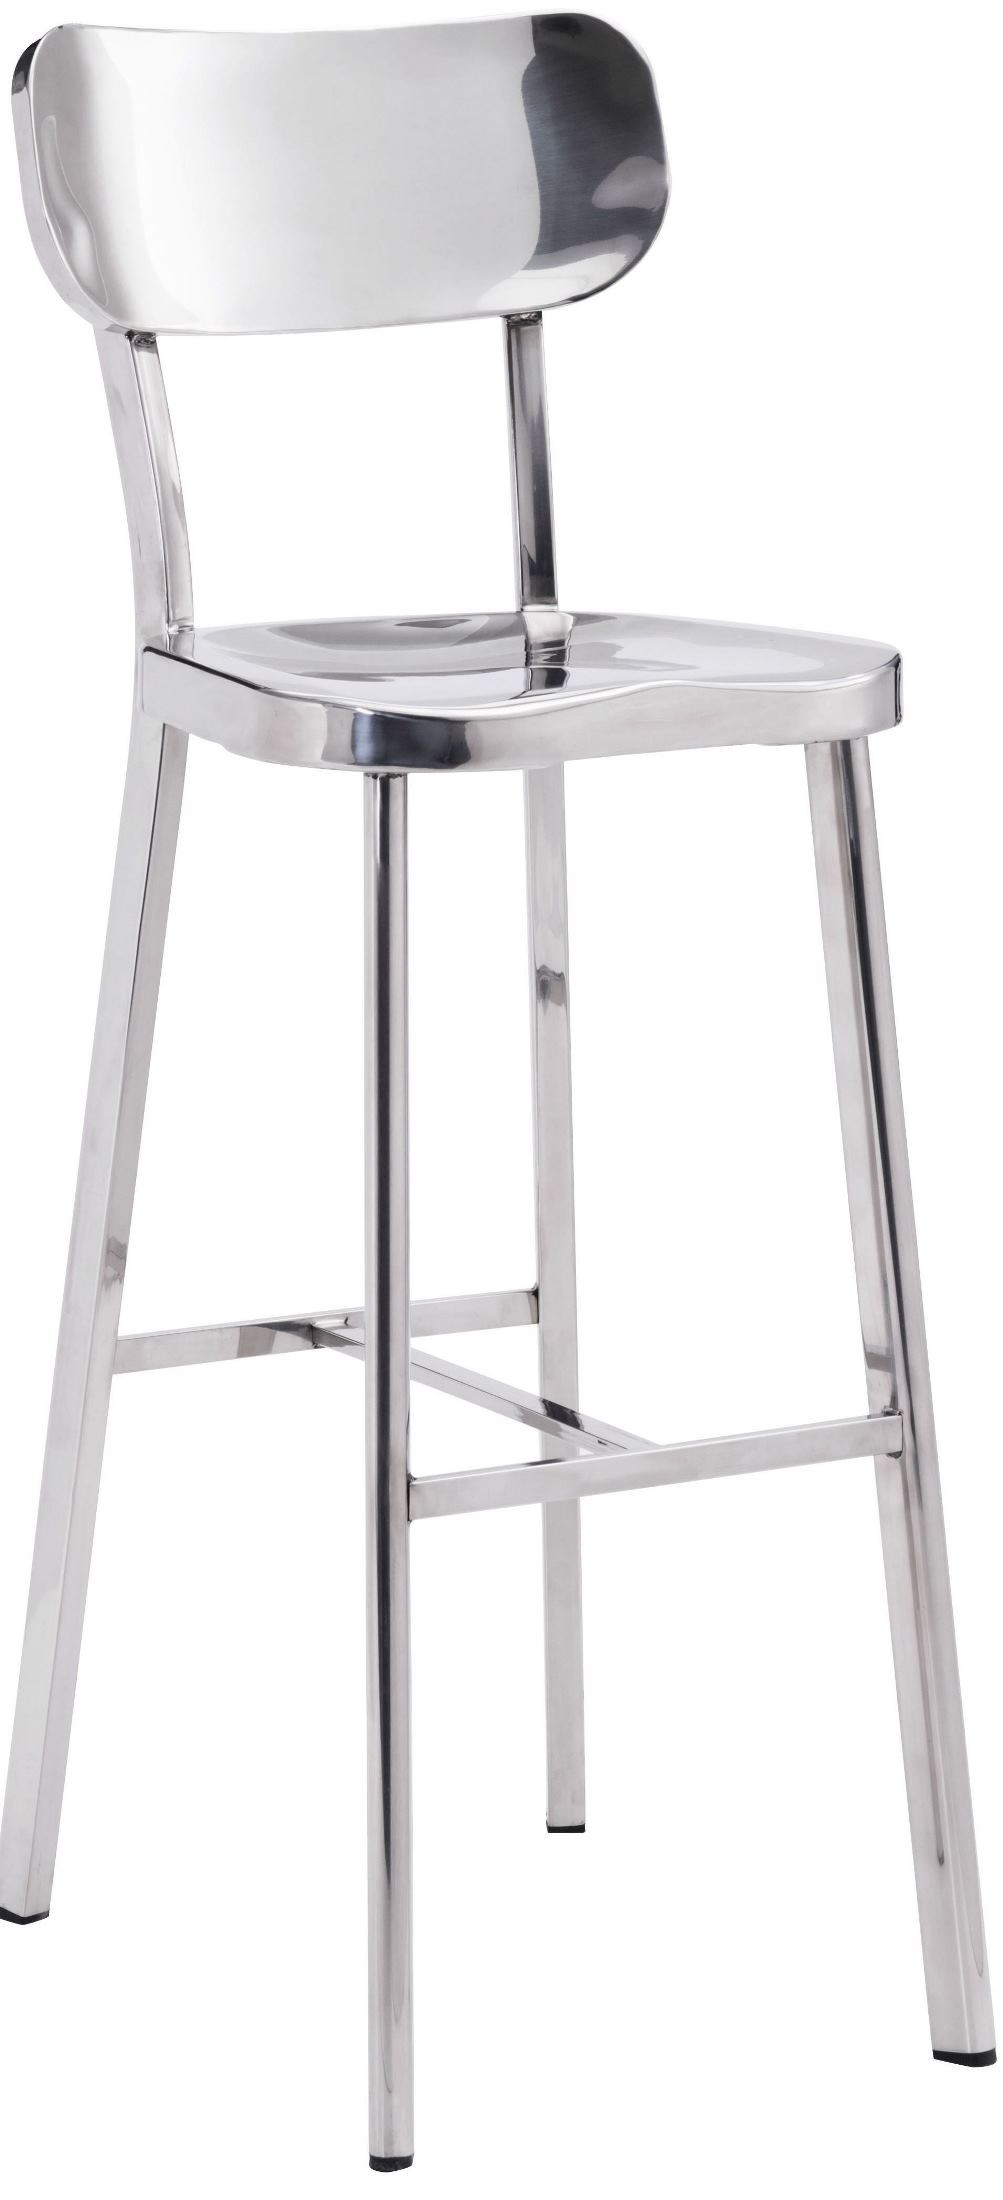 Winter Polished Stainless Steel Bar Chair From Zuo Mod